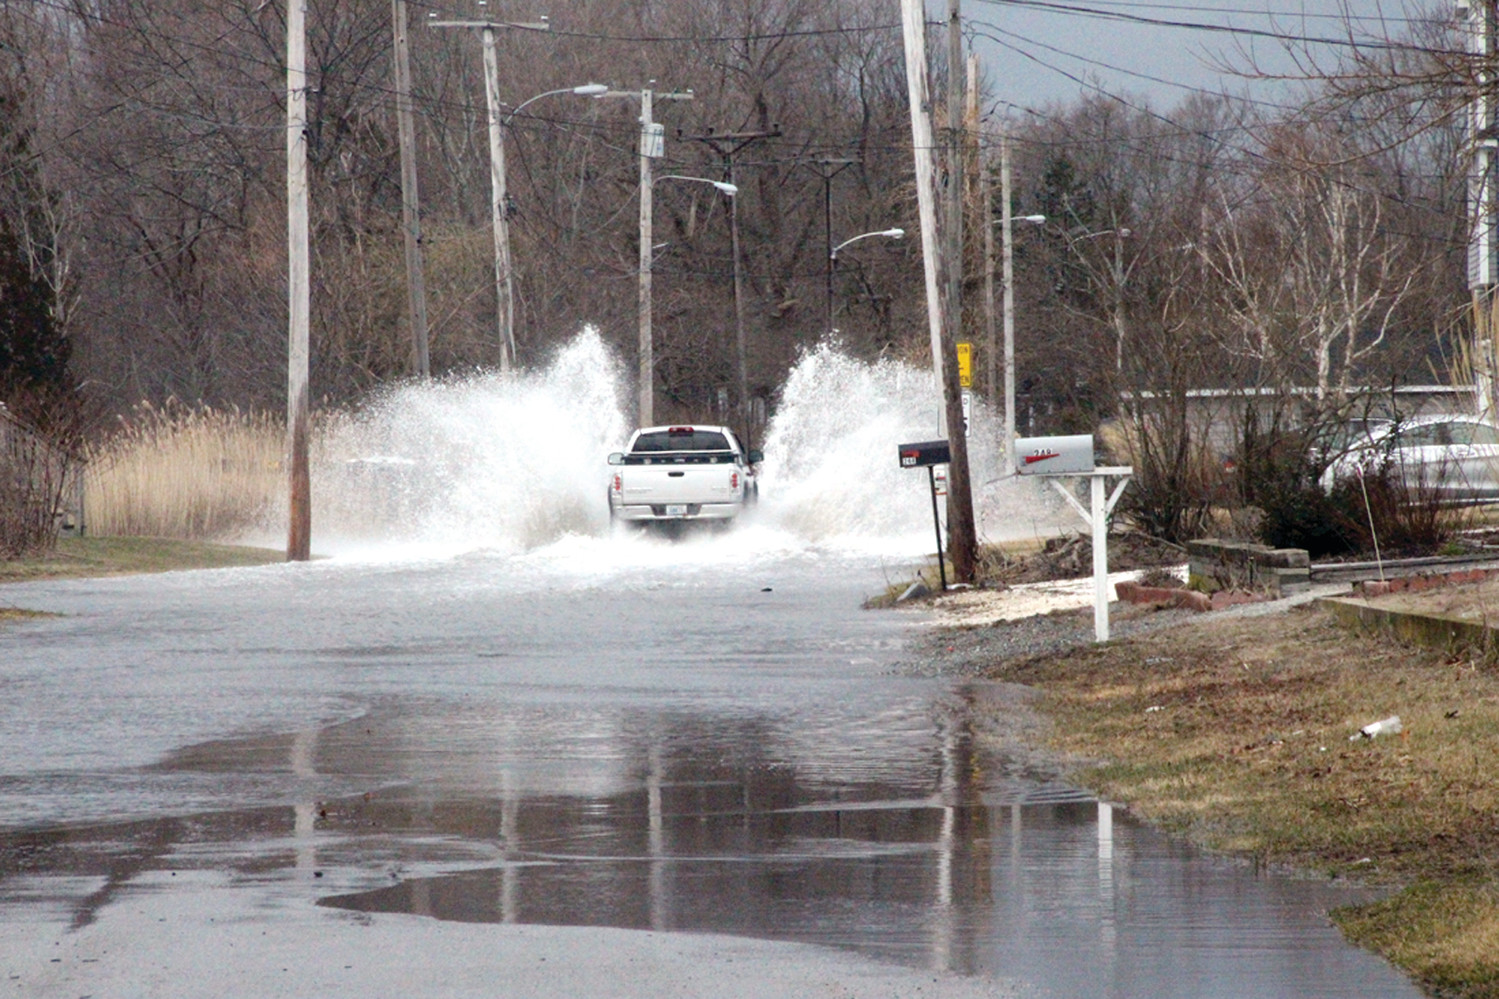 RIDING THE TIDE: The driver of a truck wasn't deterred by a flooded Shawomet Avenue during Saturday's high tide. Most motorists found a detour.